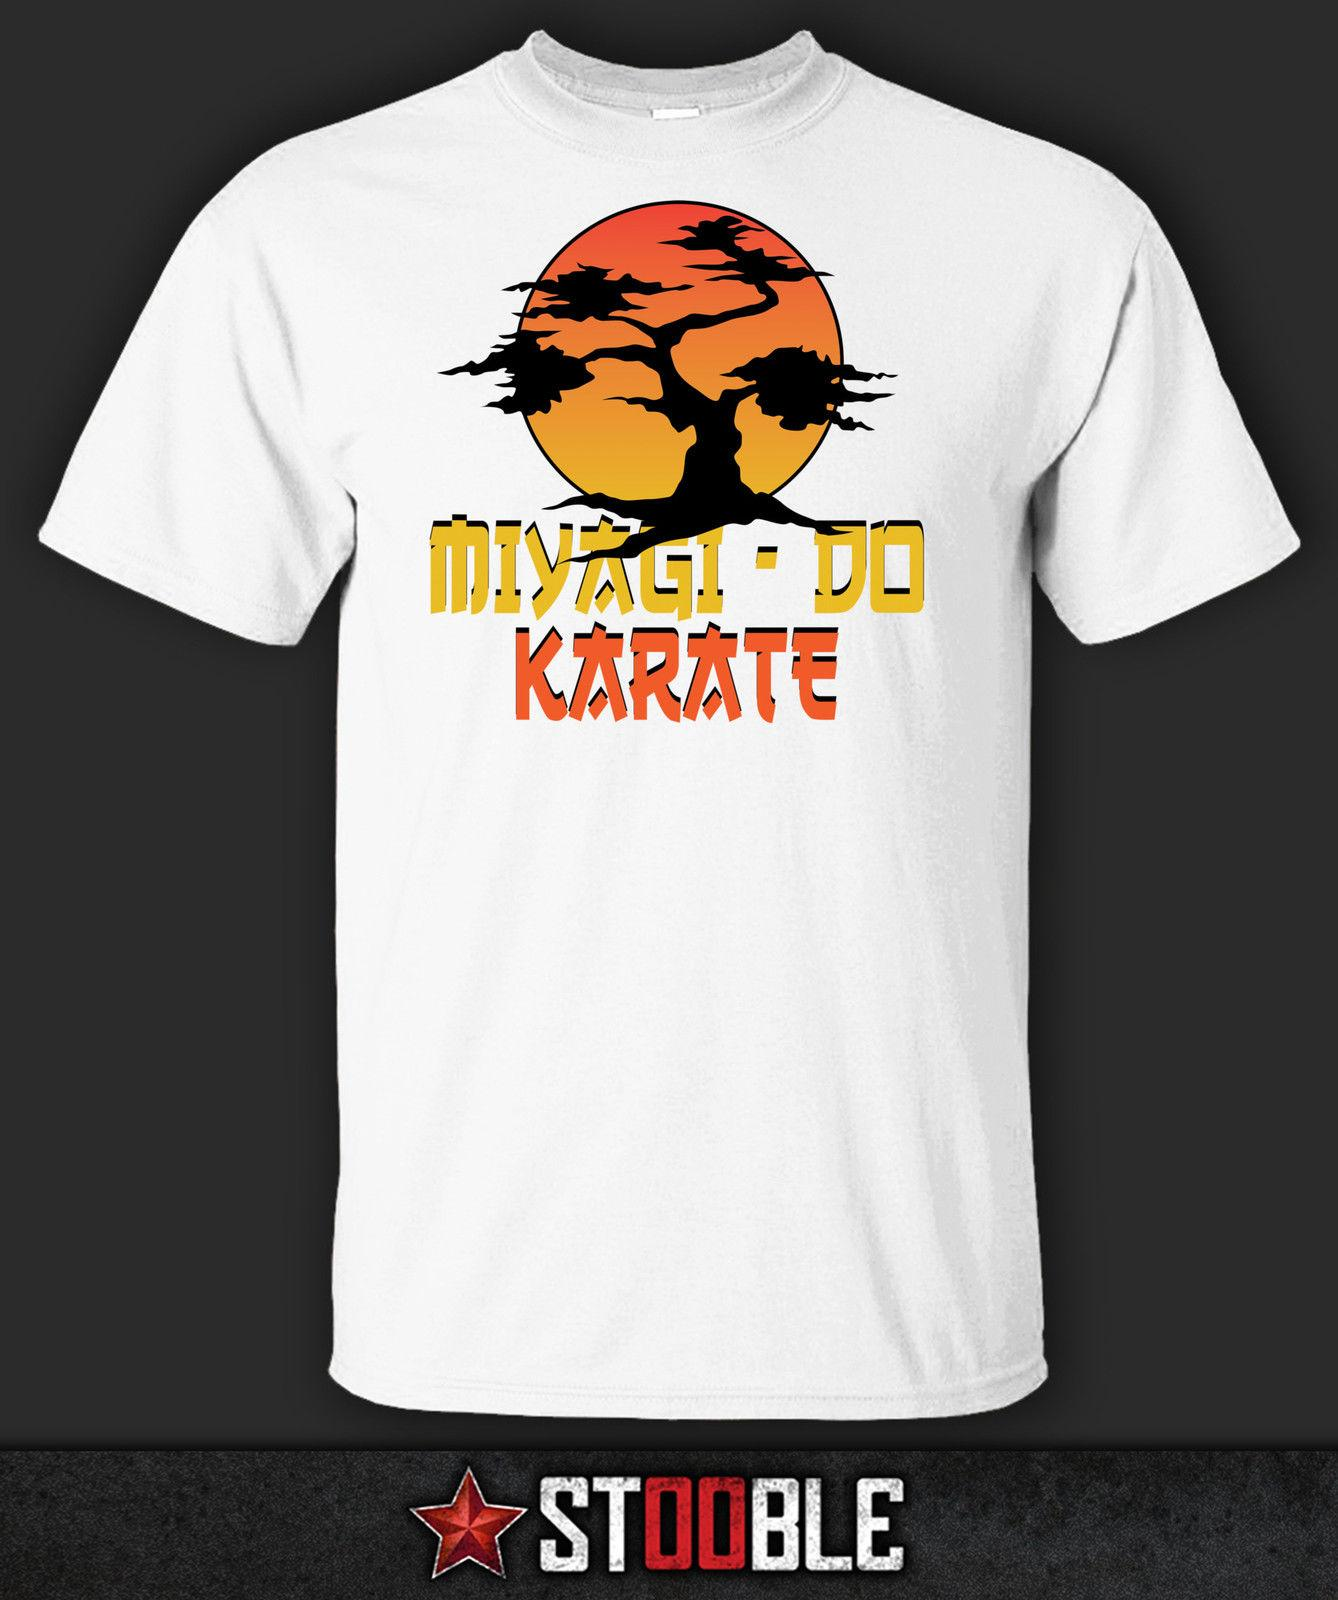 bb641387251 Print T Shirt Men Miyagi Do Karate T Shirt Direct From Stockist Nerd T  Shirts Design Shirt From Shorttshirt